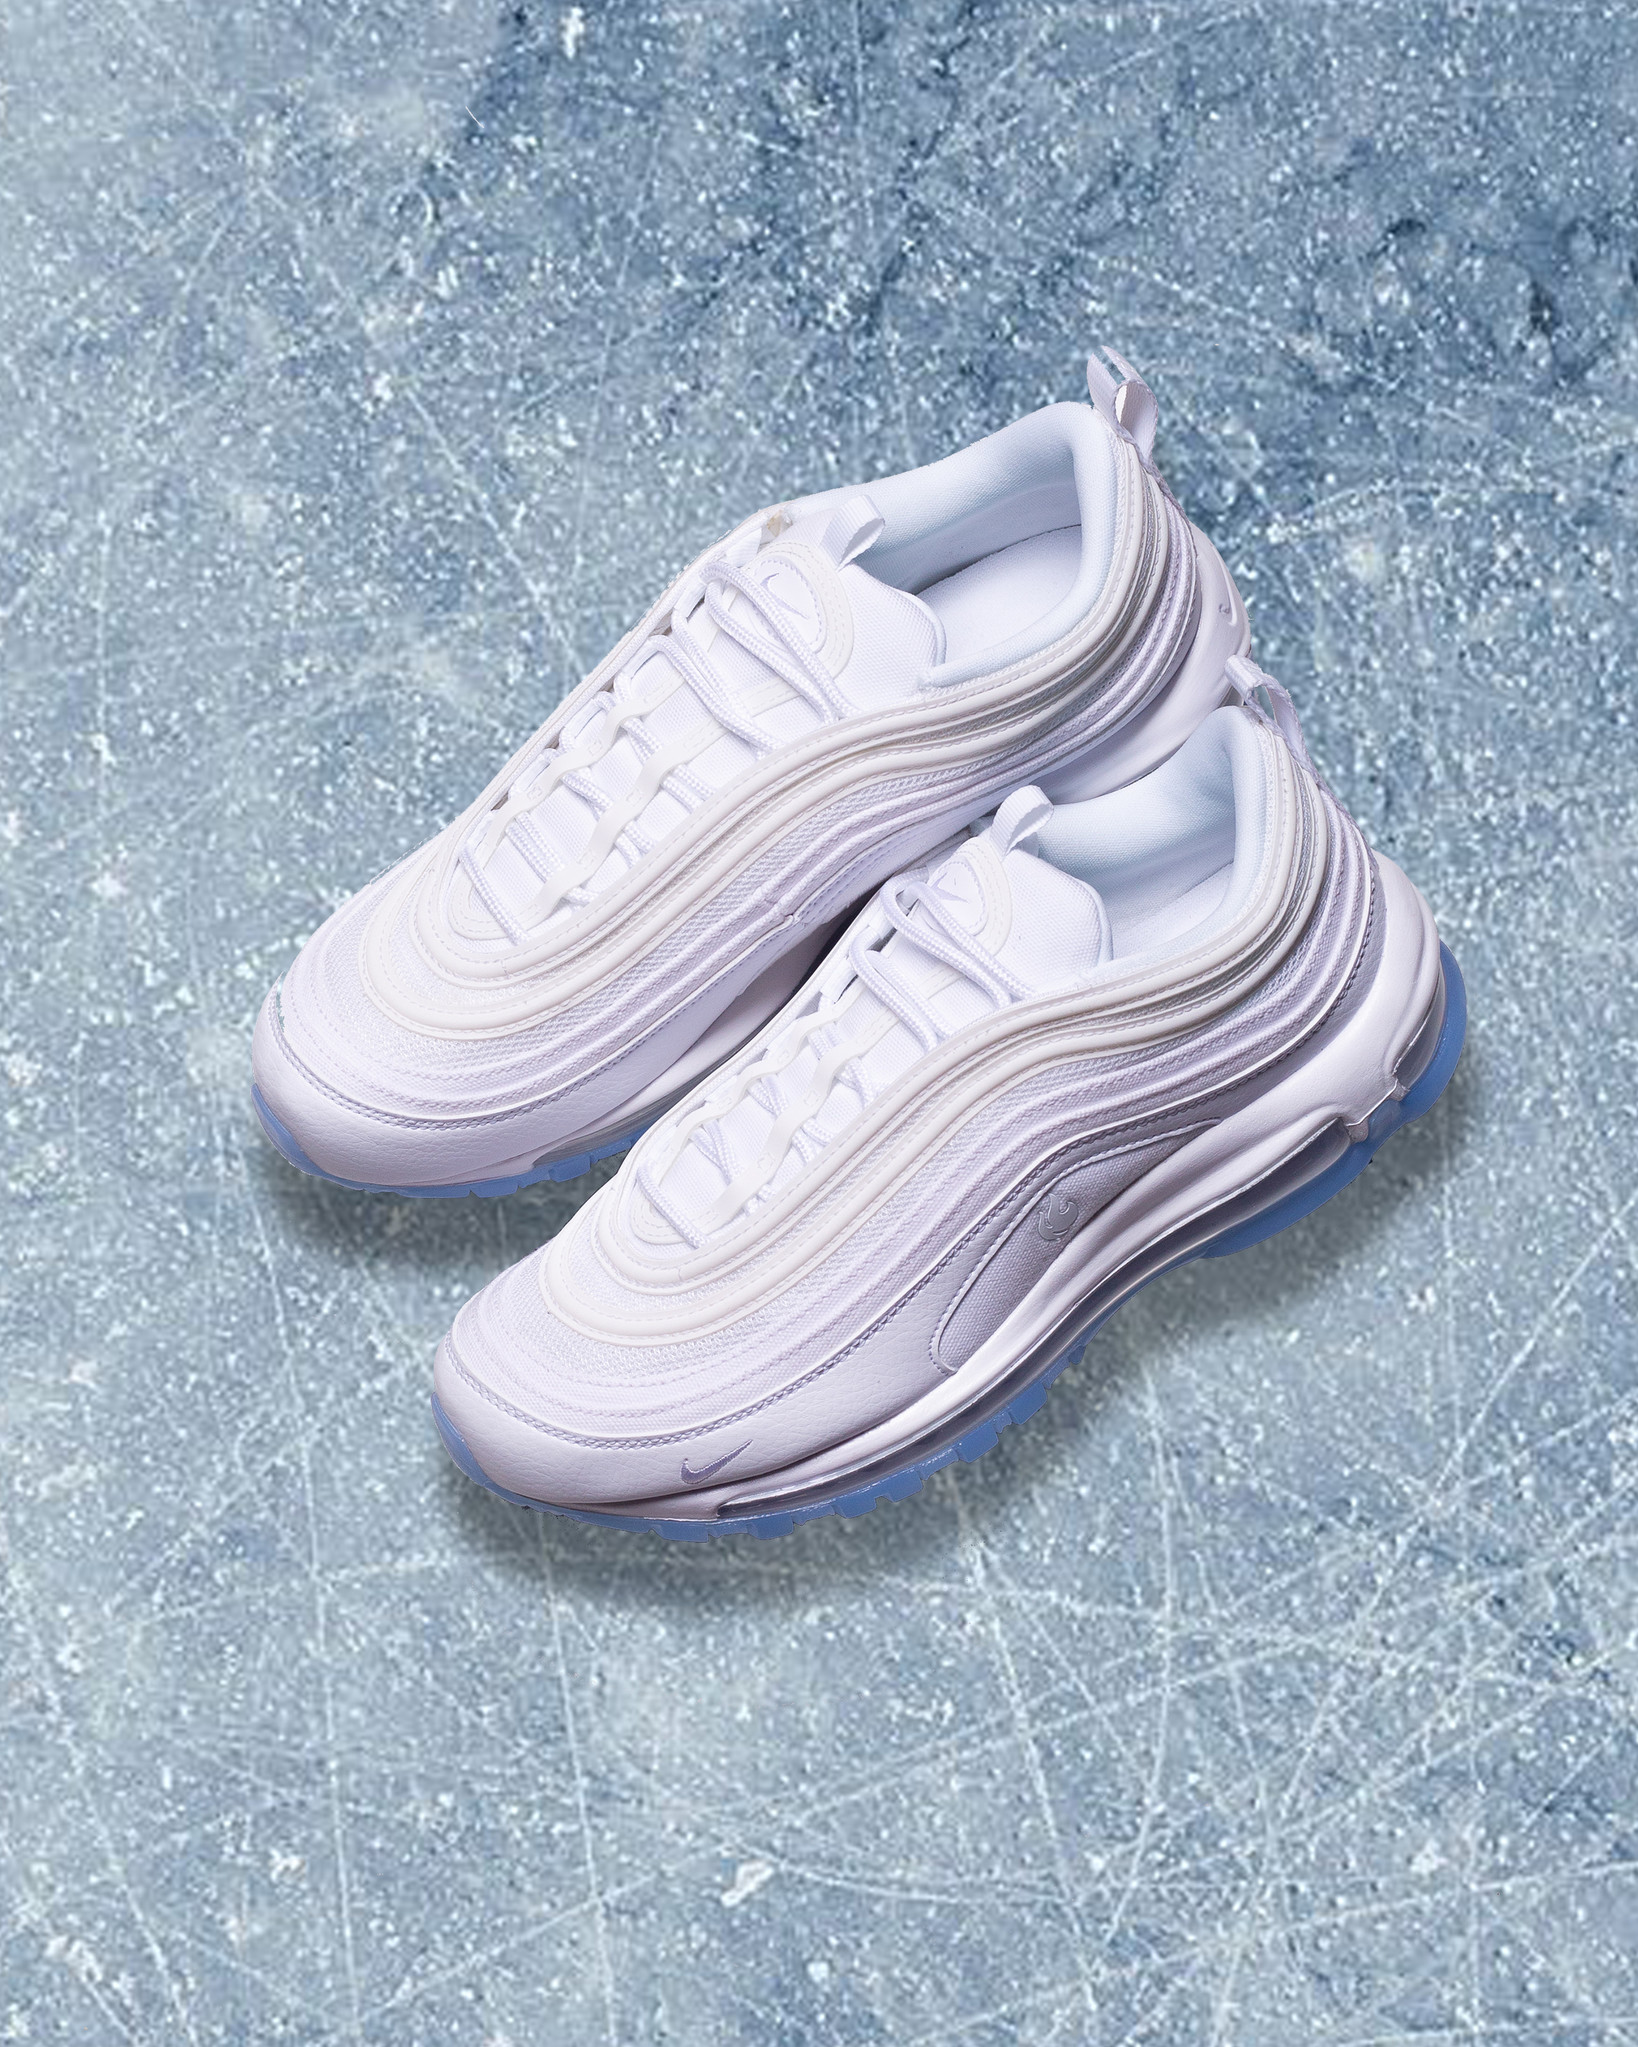 Nike Nike Air Max 97 'Fire Meets Ice'